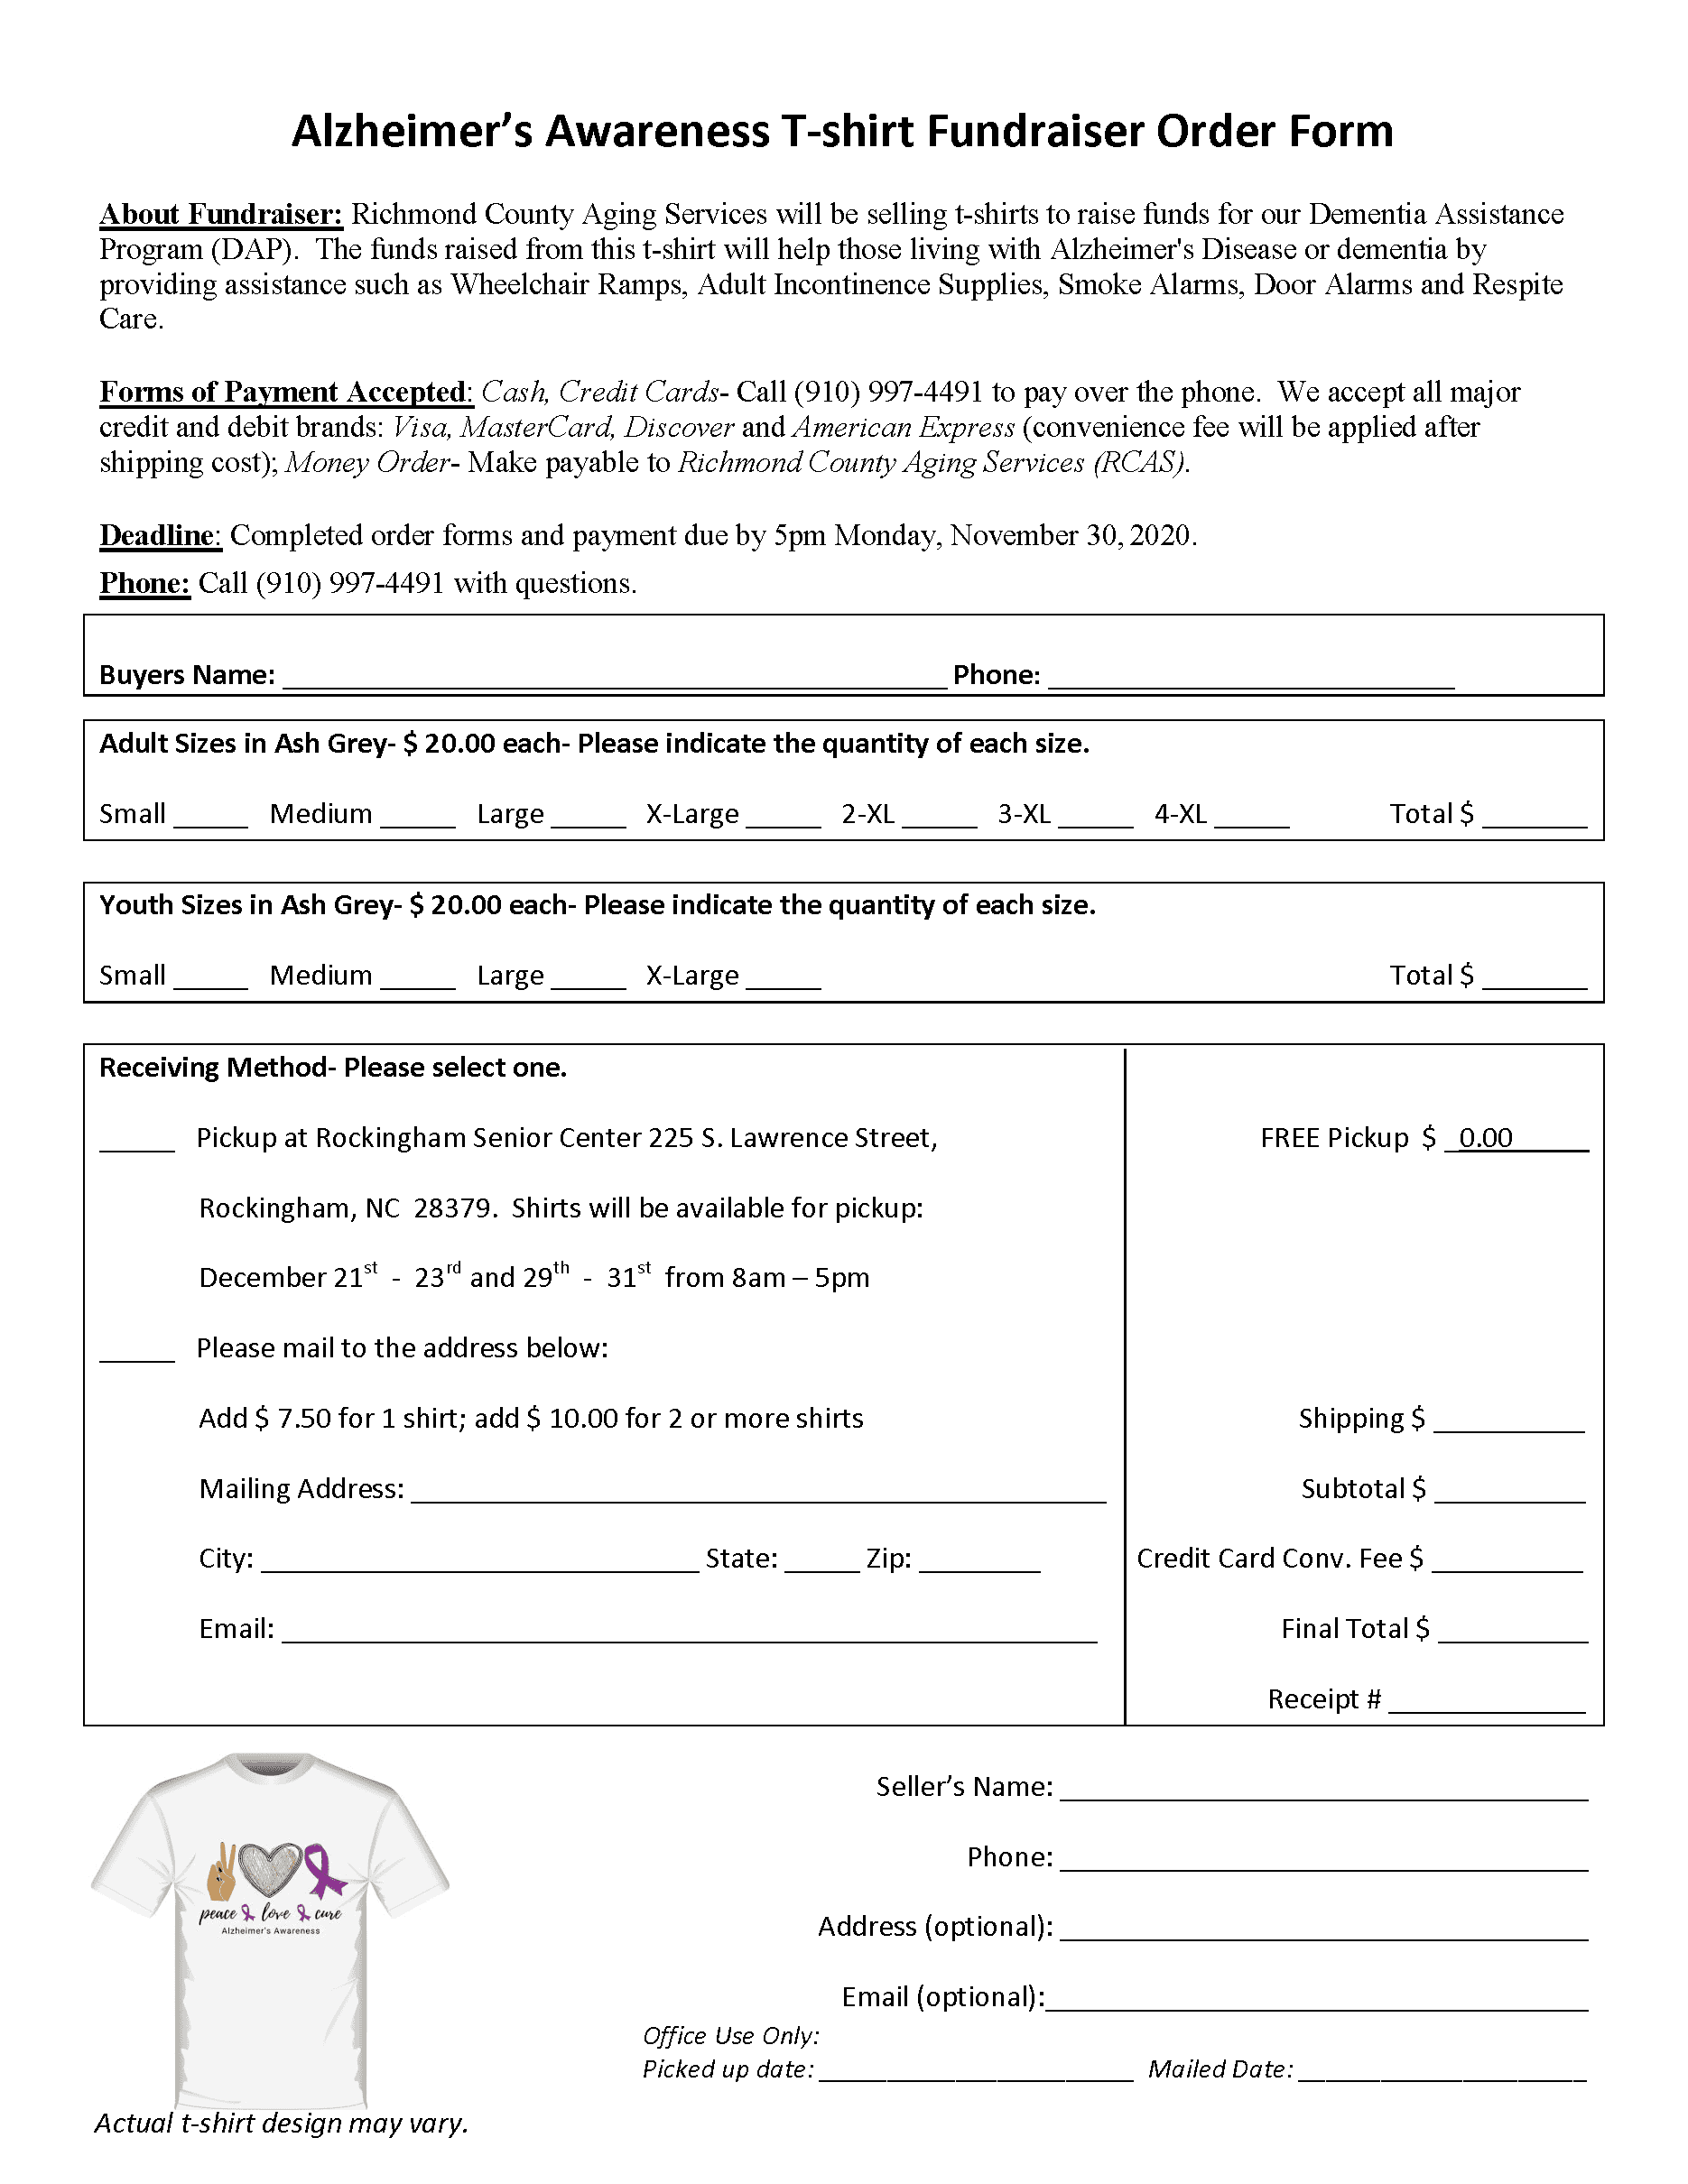 Alz awareness T-shirt order form 2020